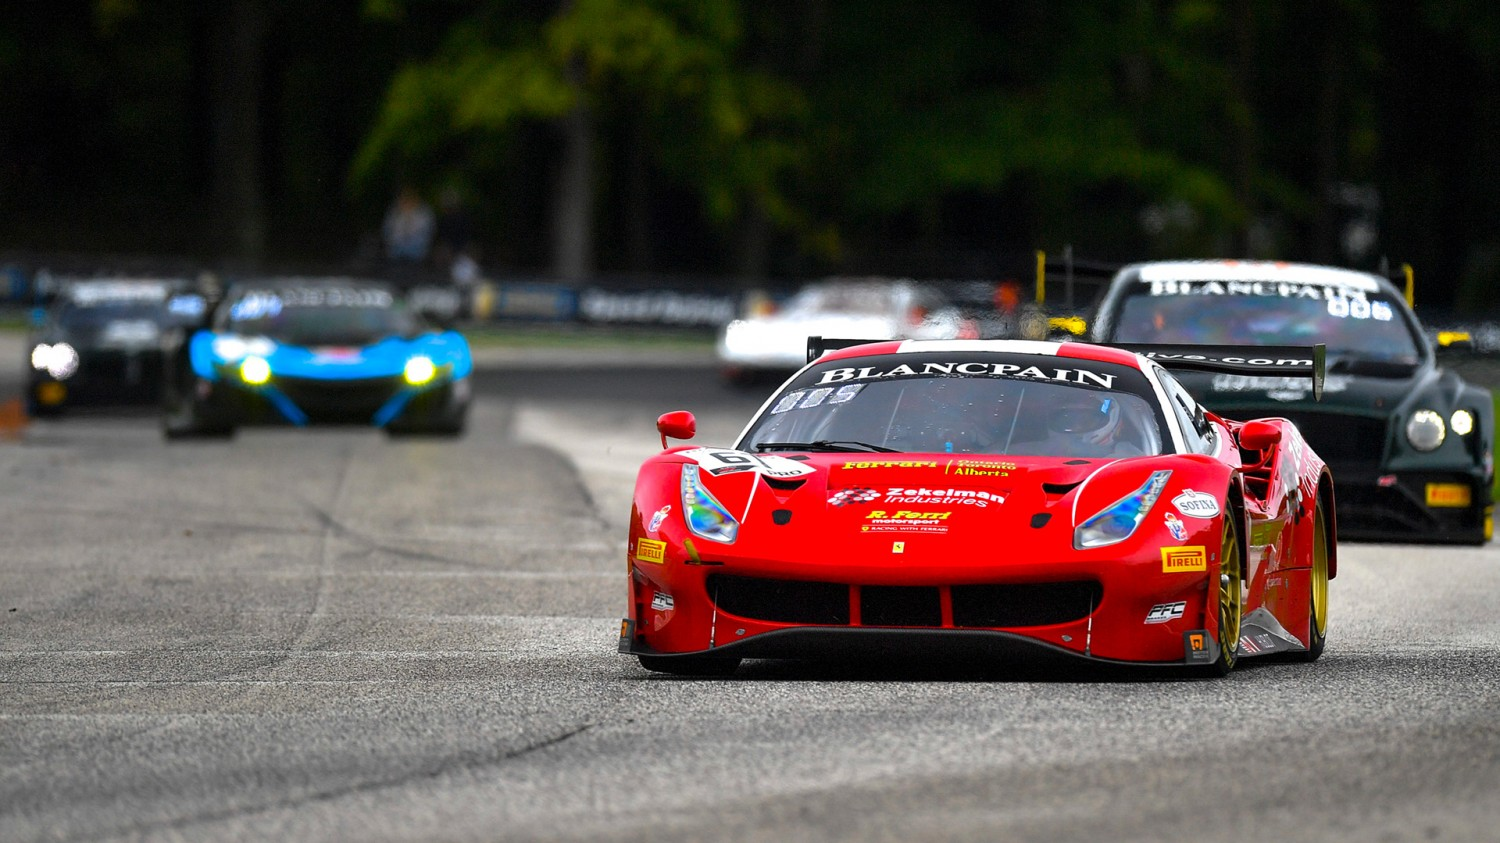 Blancpain GT World Challenge America Championships up for Grabs under Vegas' Bright Lights